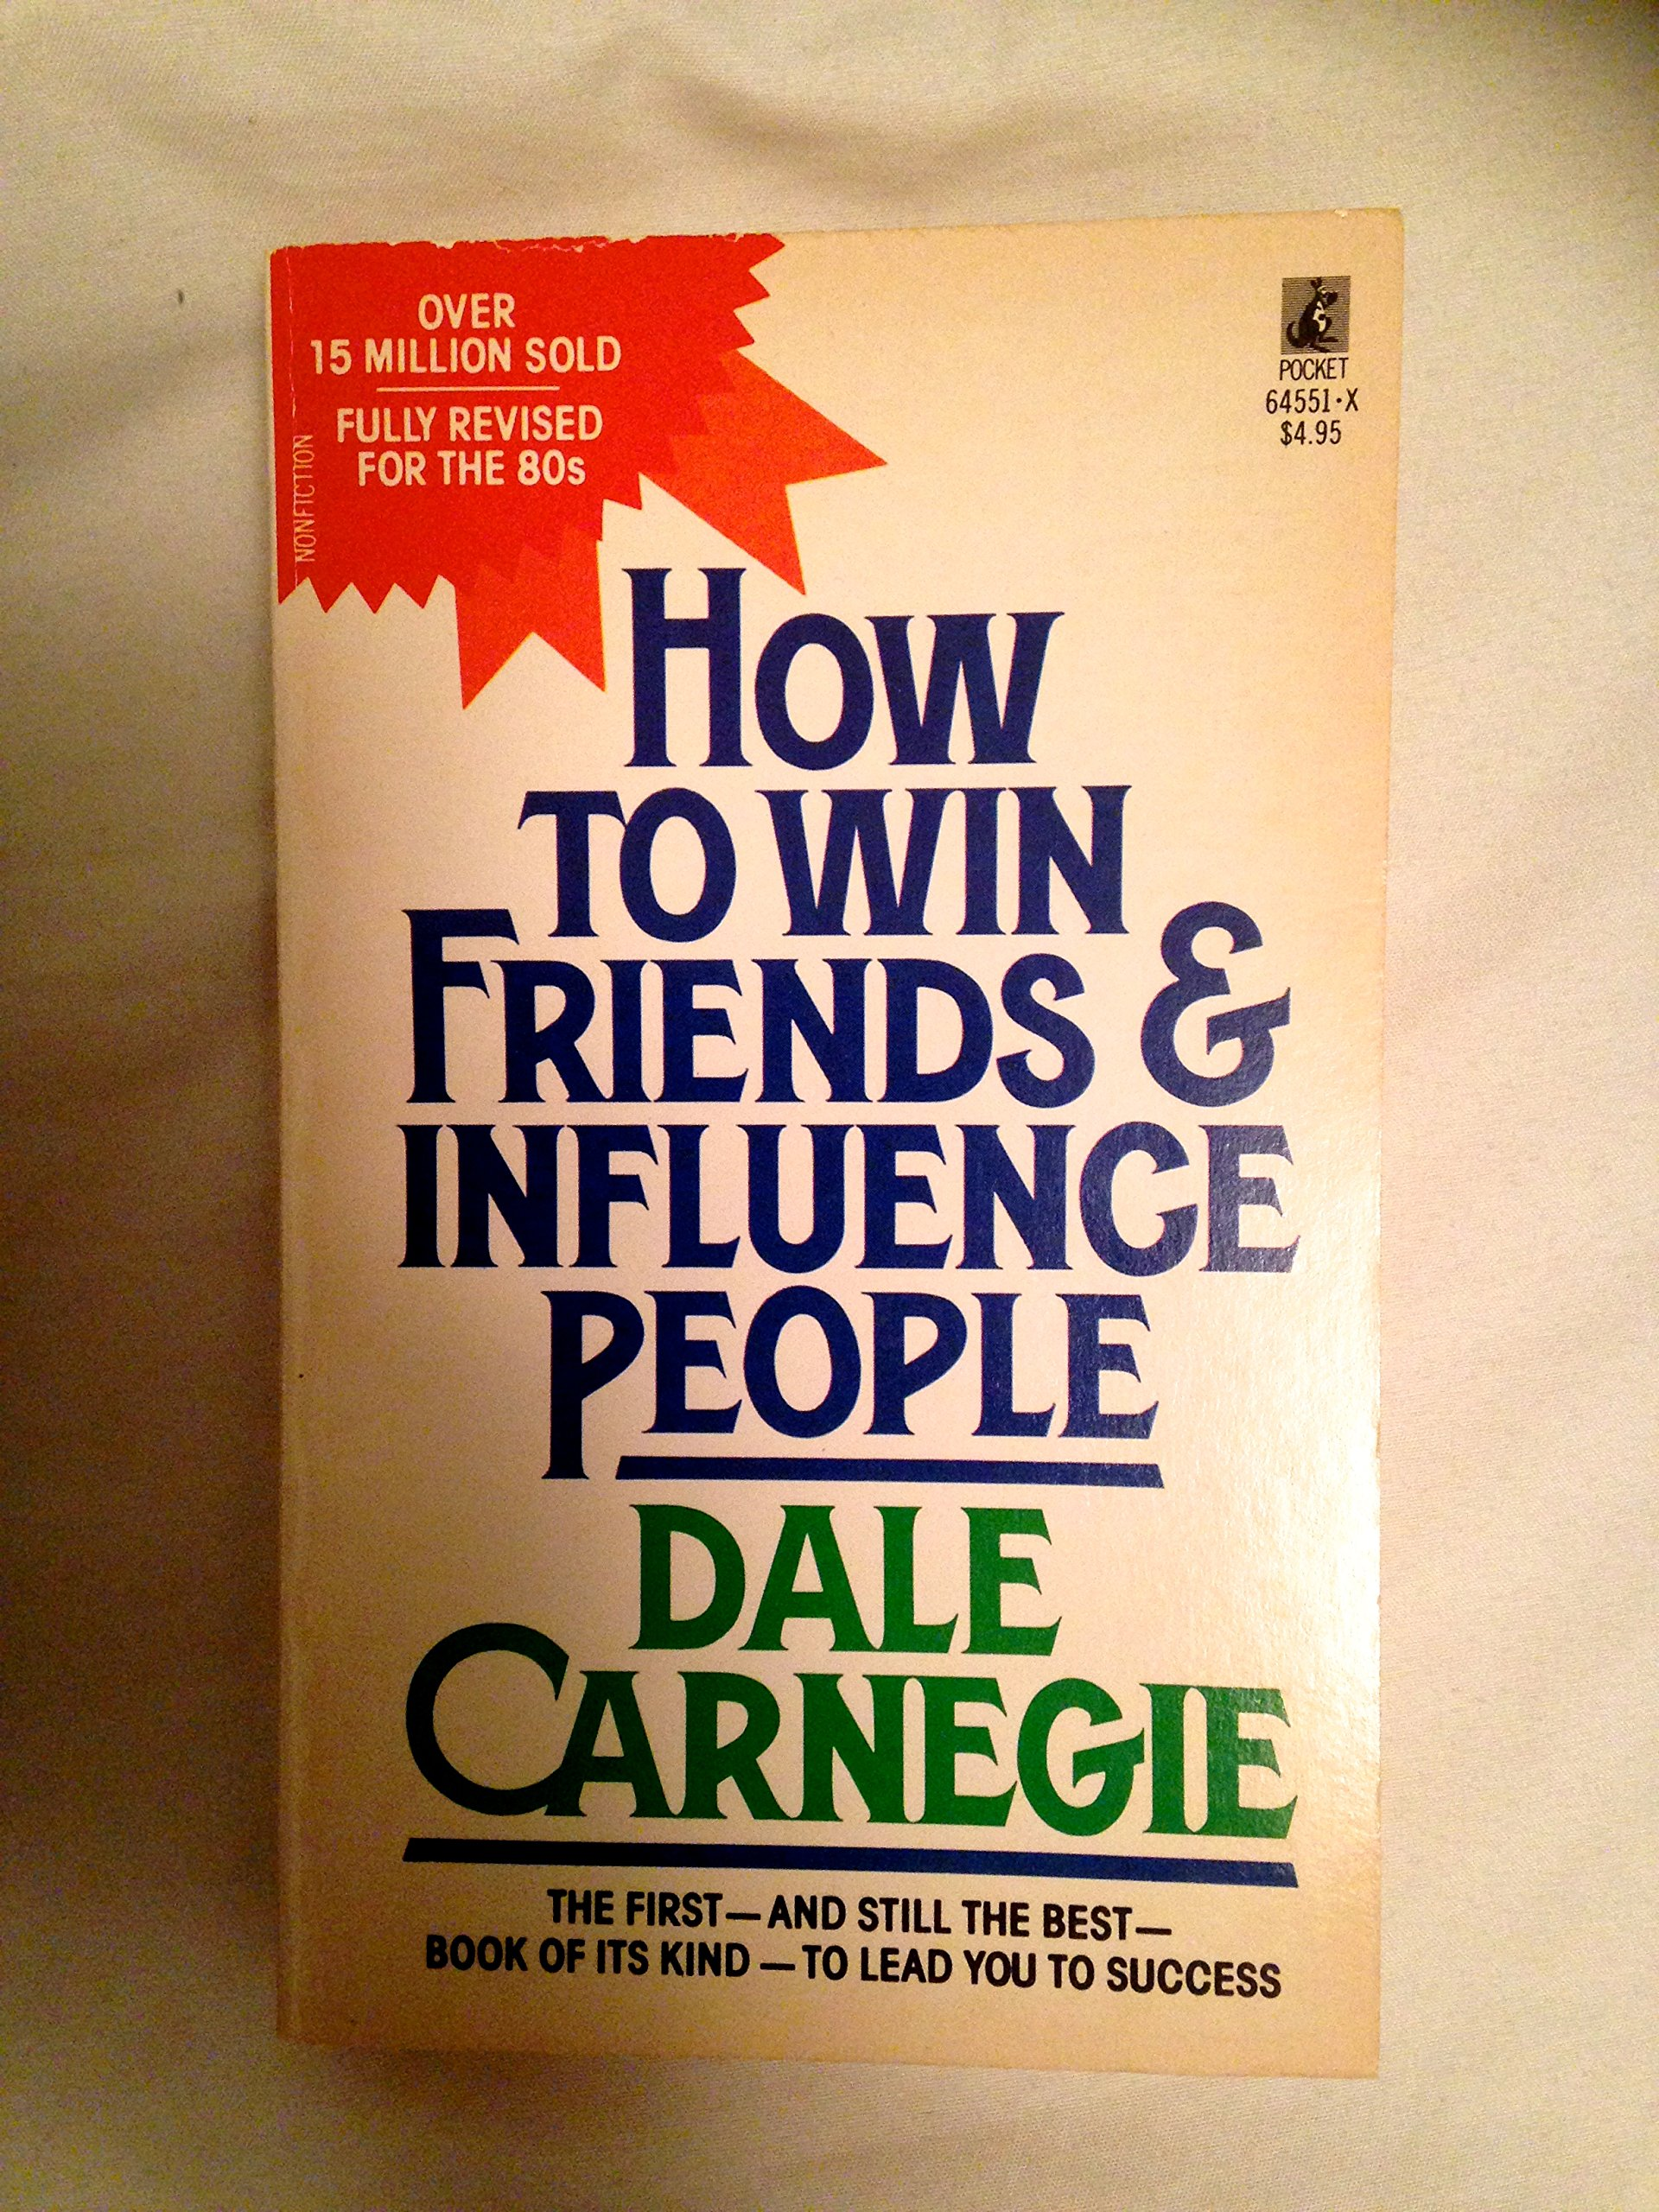 How to Win Friends & Influence People: Dale Carnegie: 9780671645519:  Amazon.com: Books